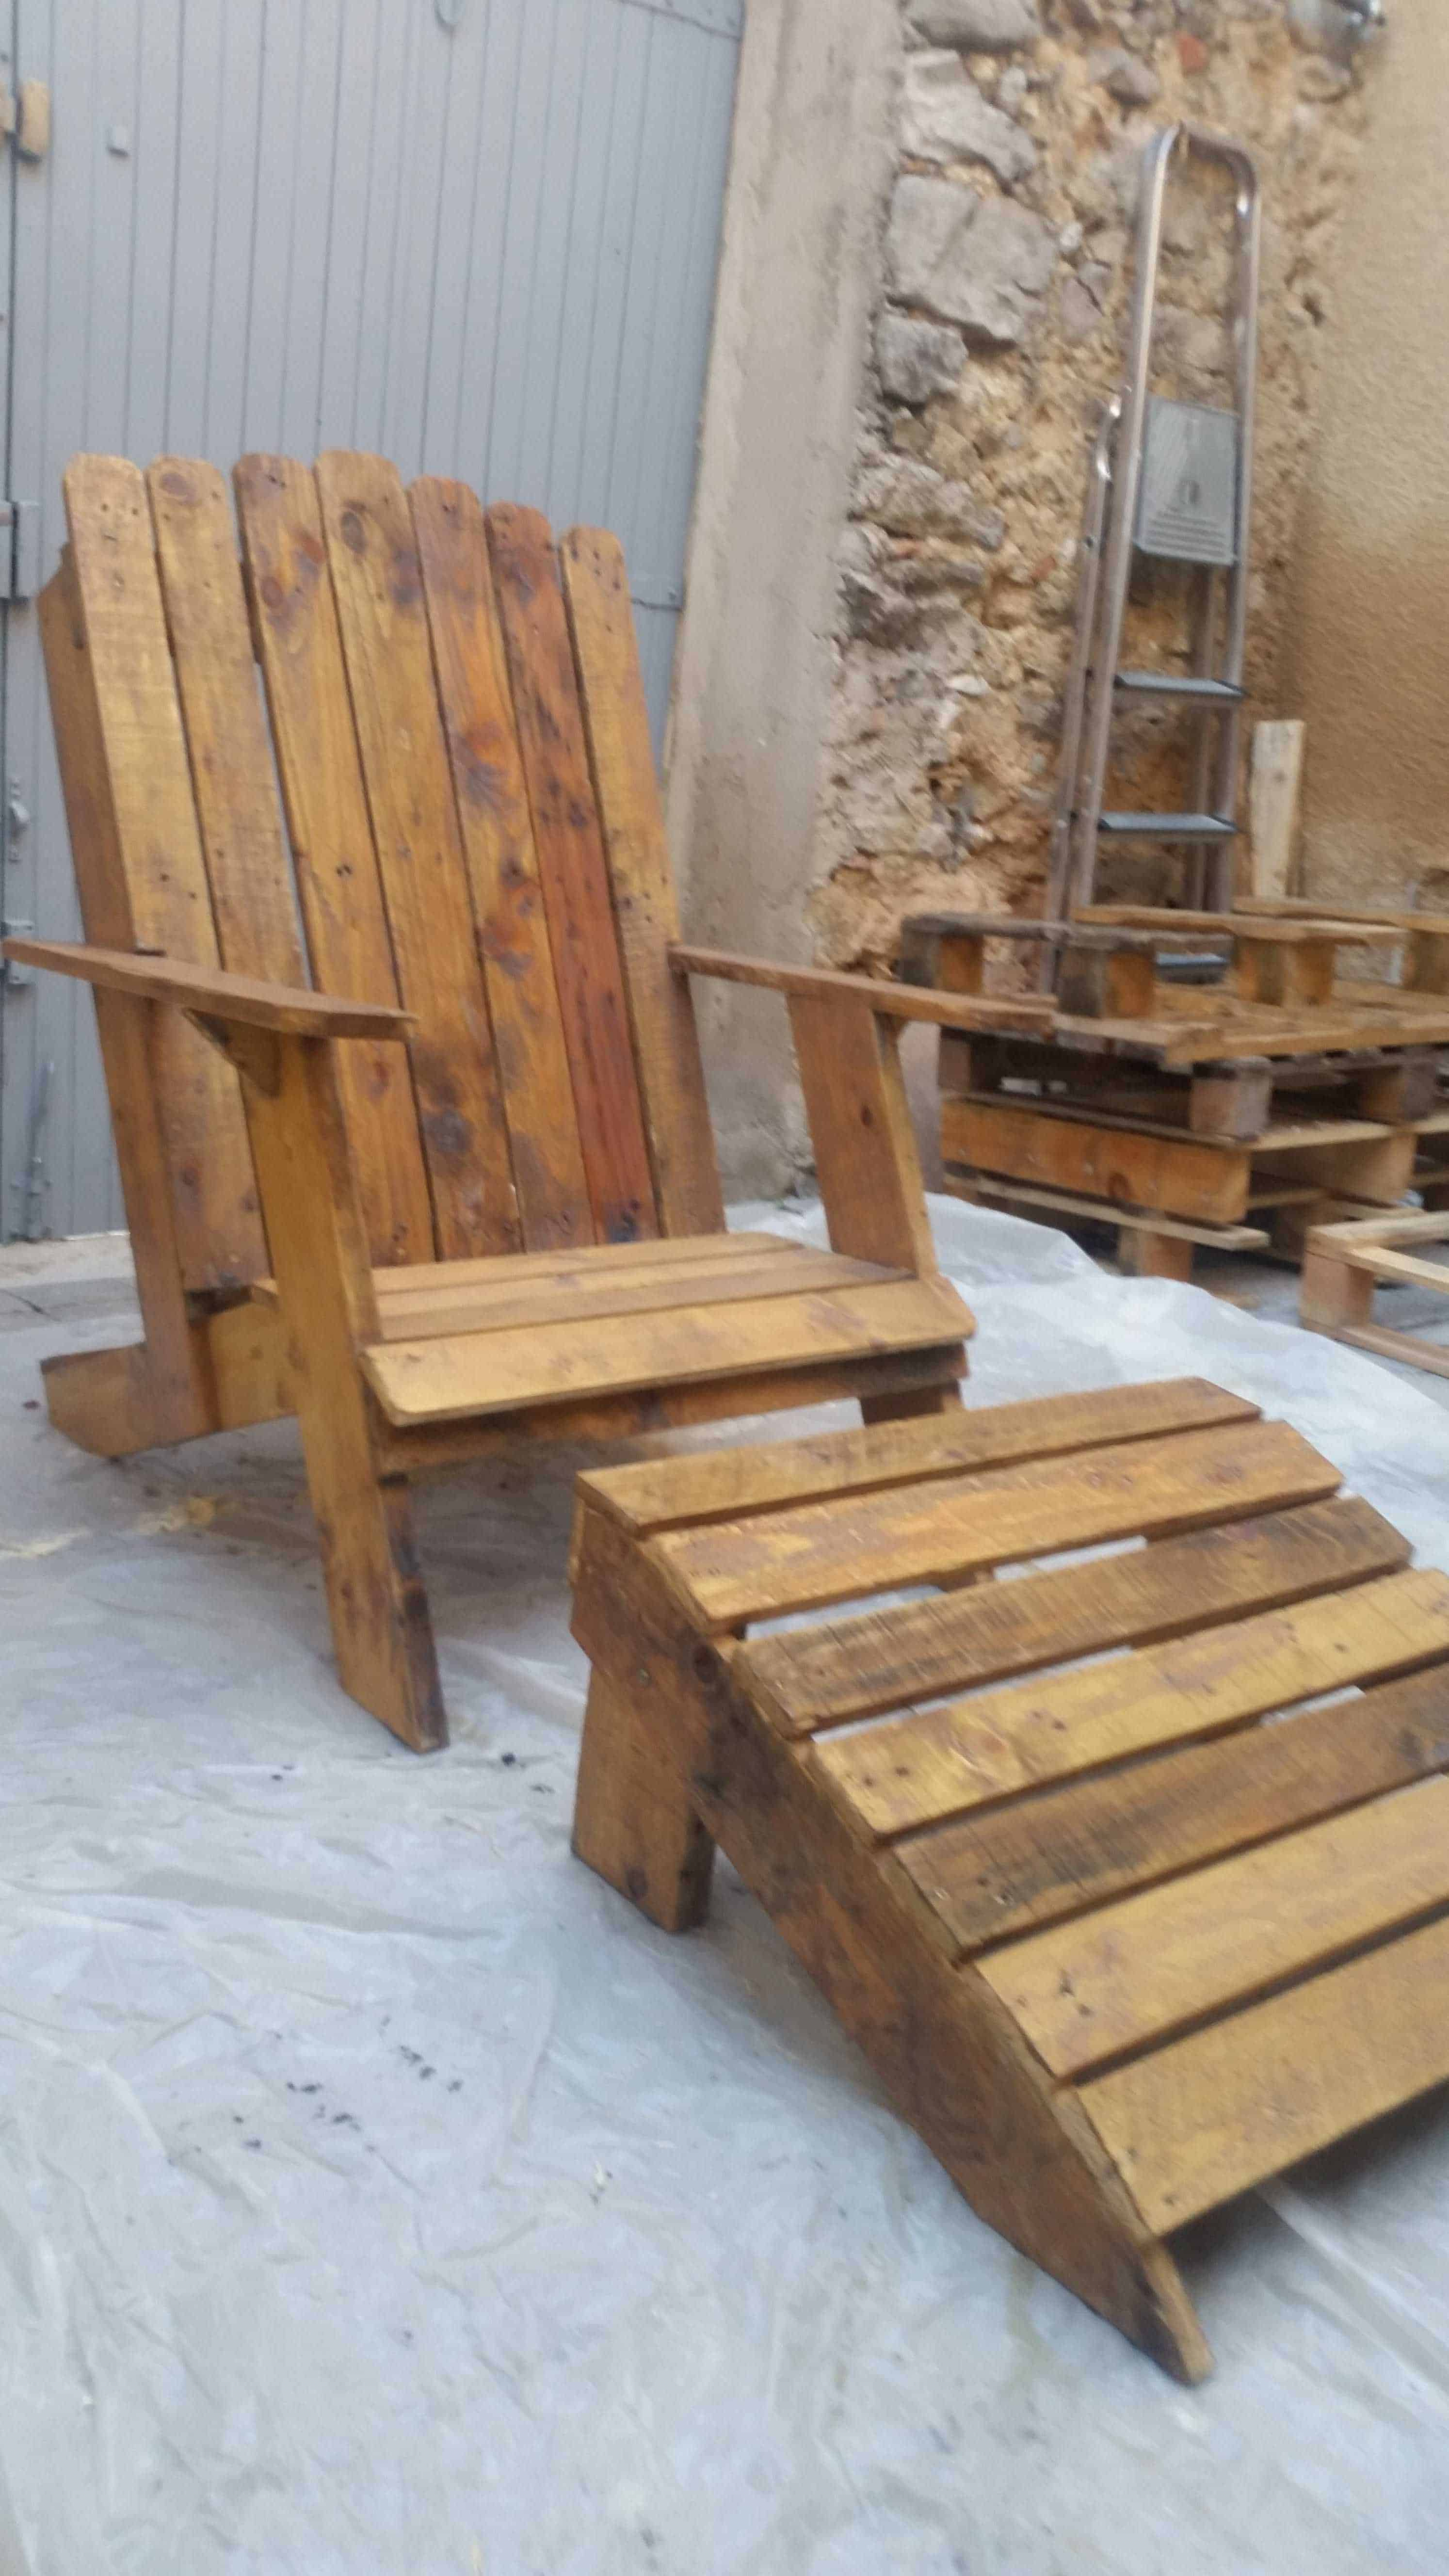 Tall lamps for living room - Pallet Adirondack Chair Pallet Ideas 1001 Pallets